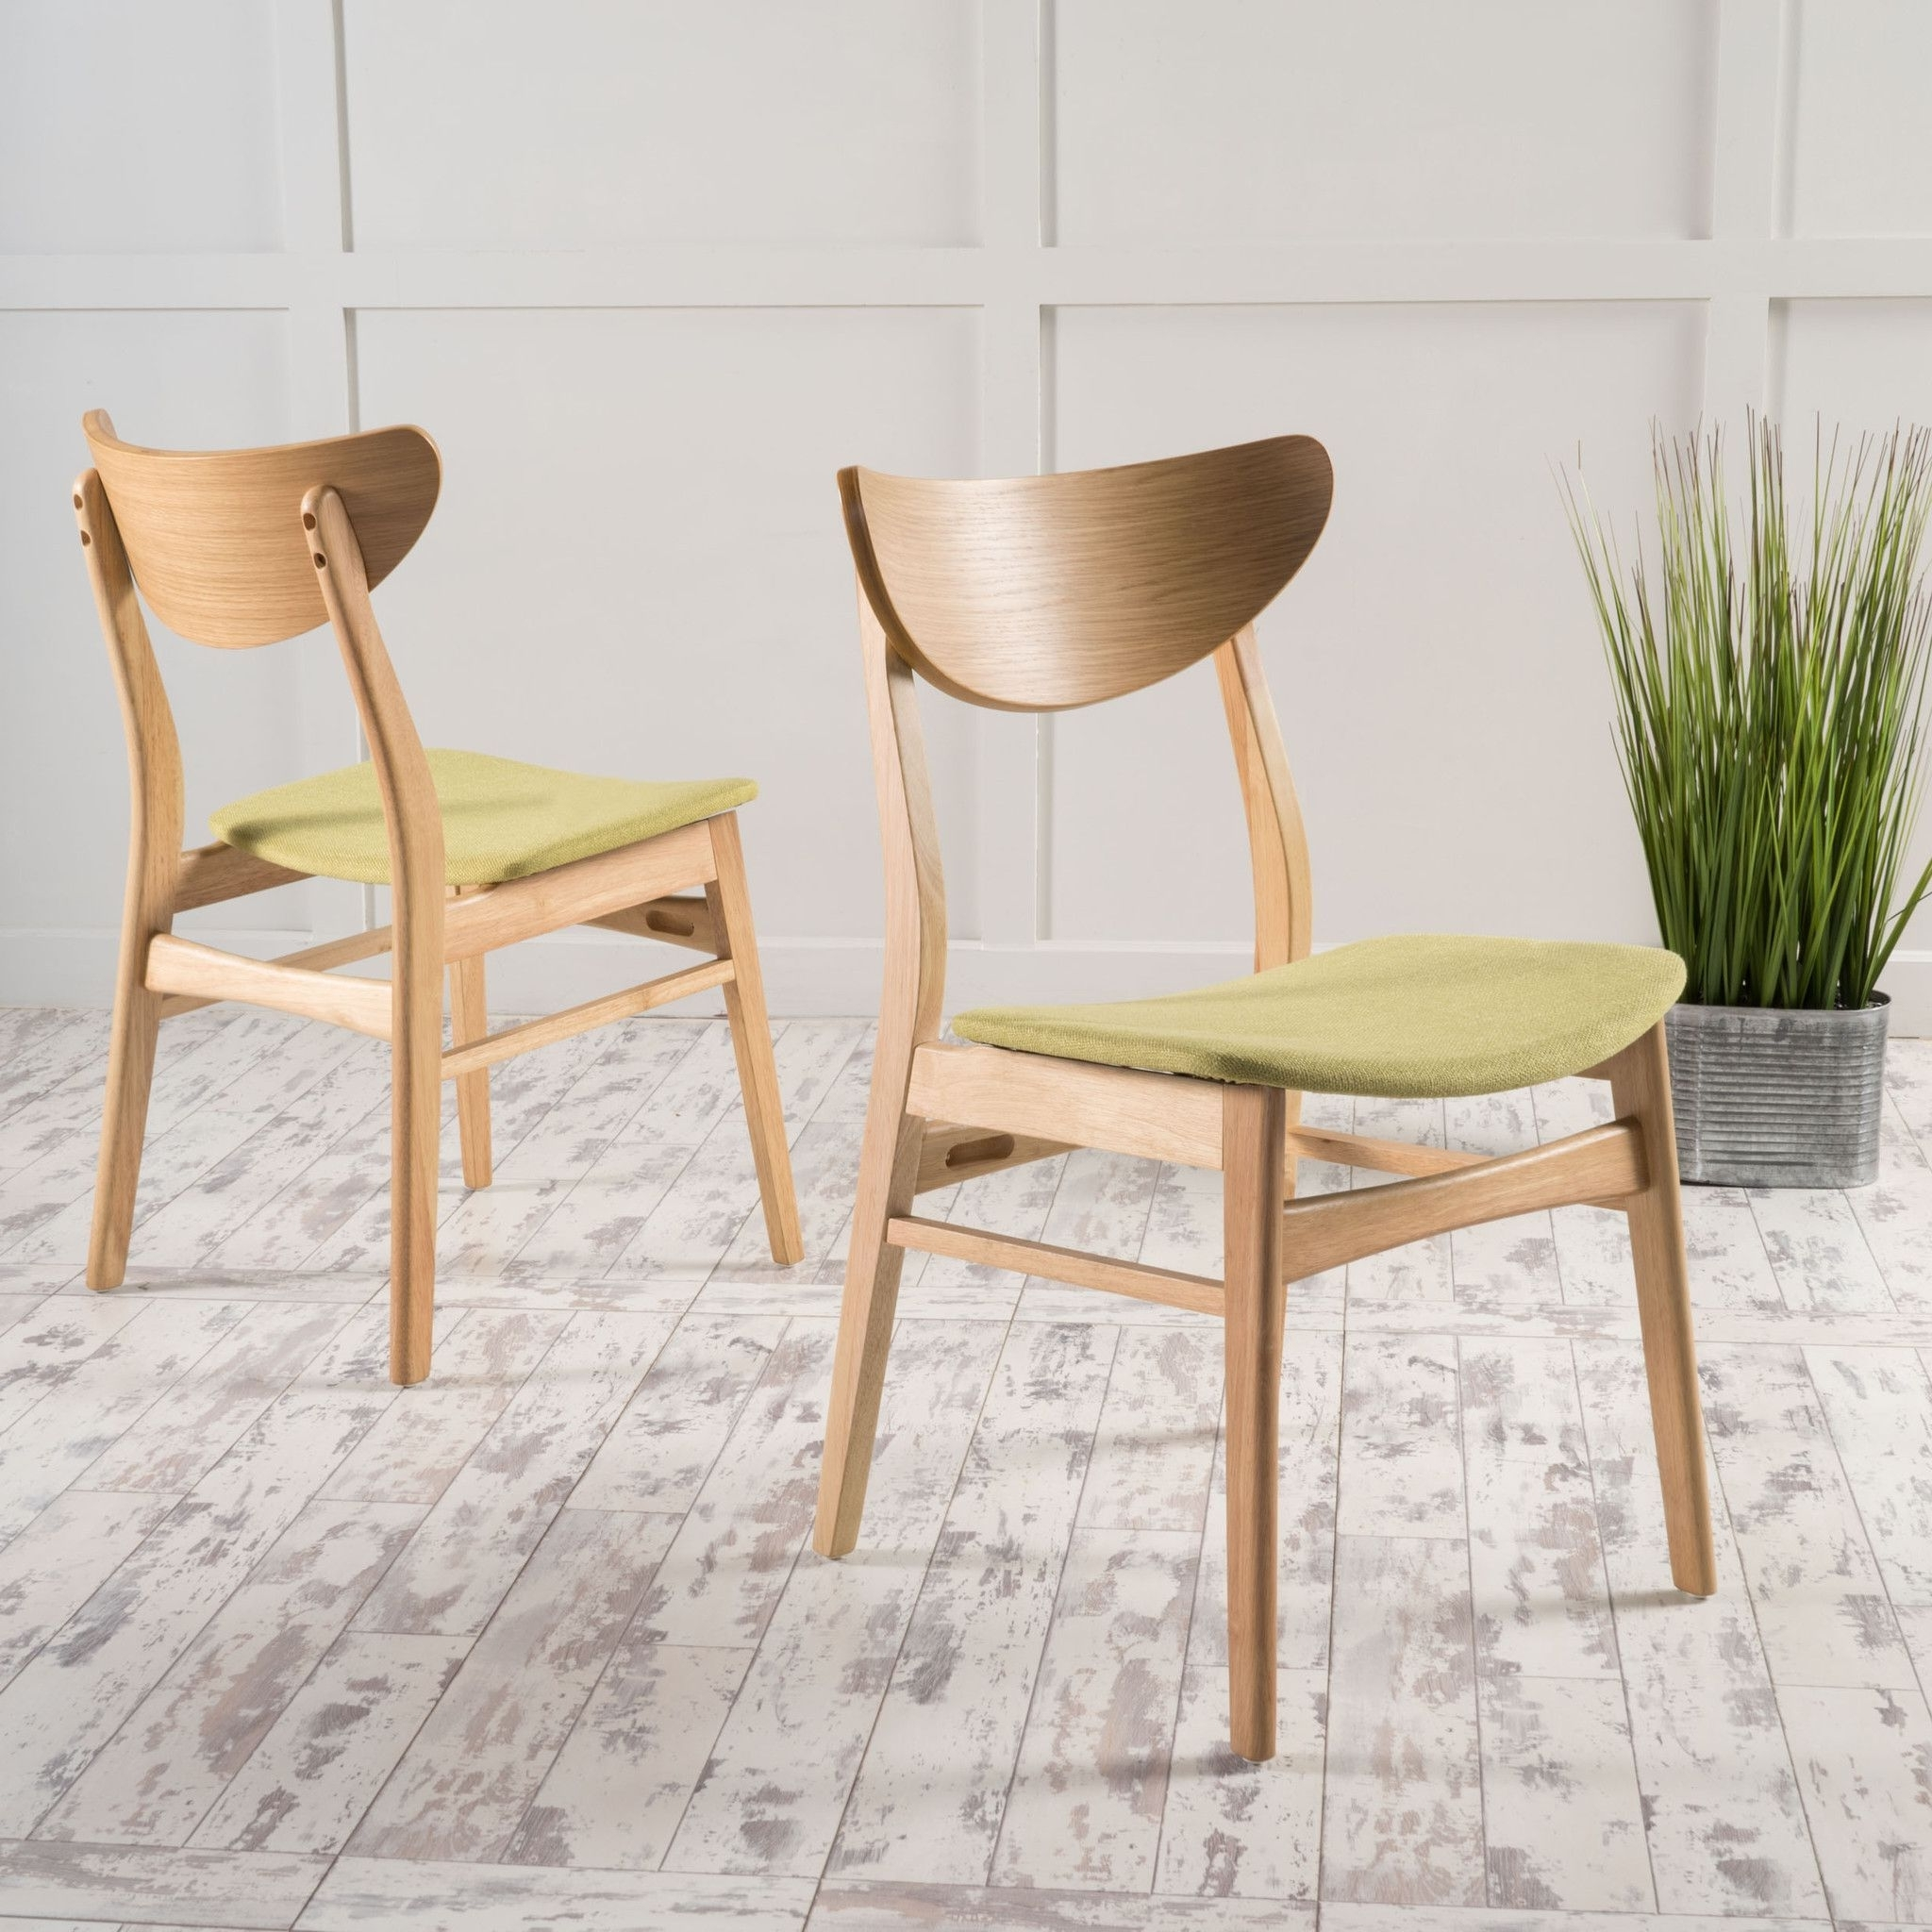 Stylish Dining Chairs Throughout 2017 Camilla Scandinavian Design Dining Chairs (Set Of 2) This Stylish (View 18 of 25)